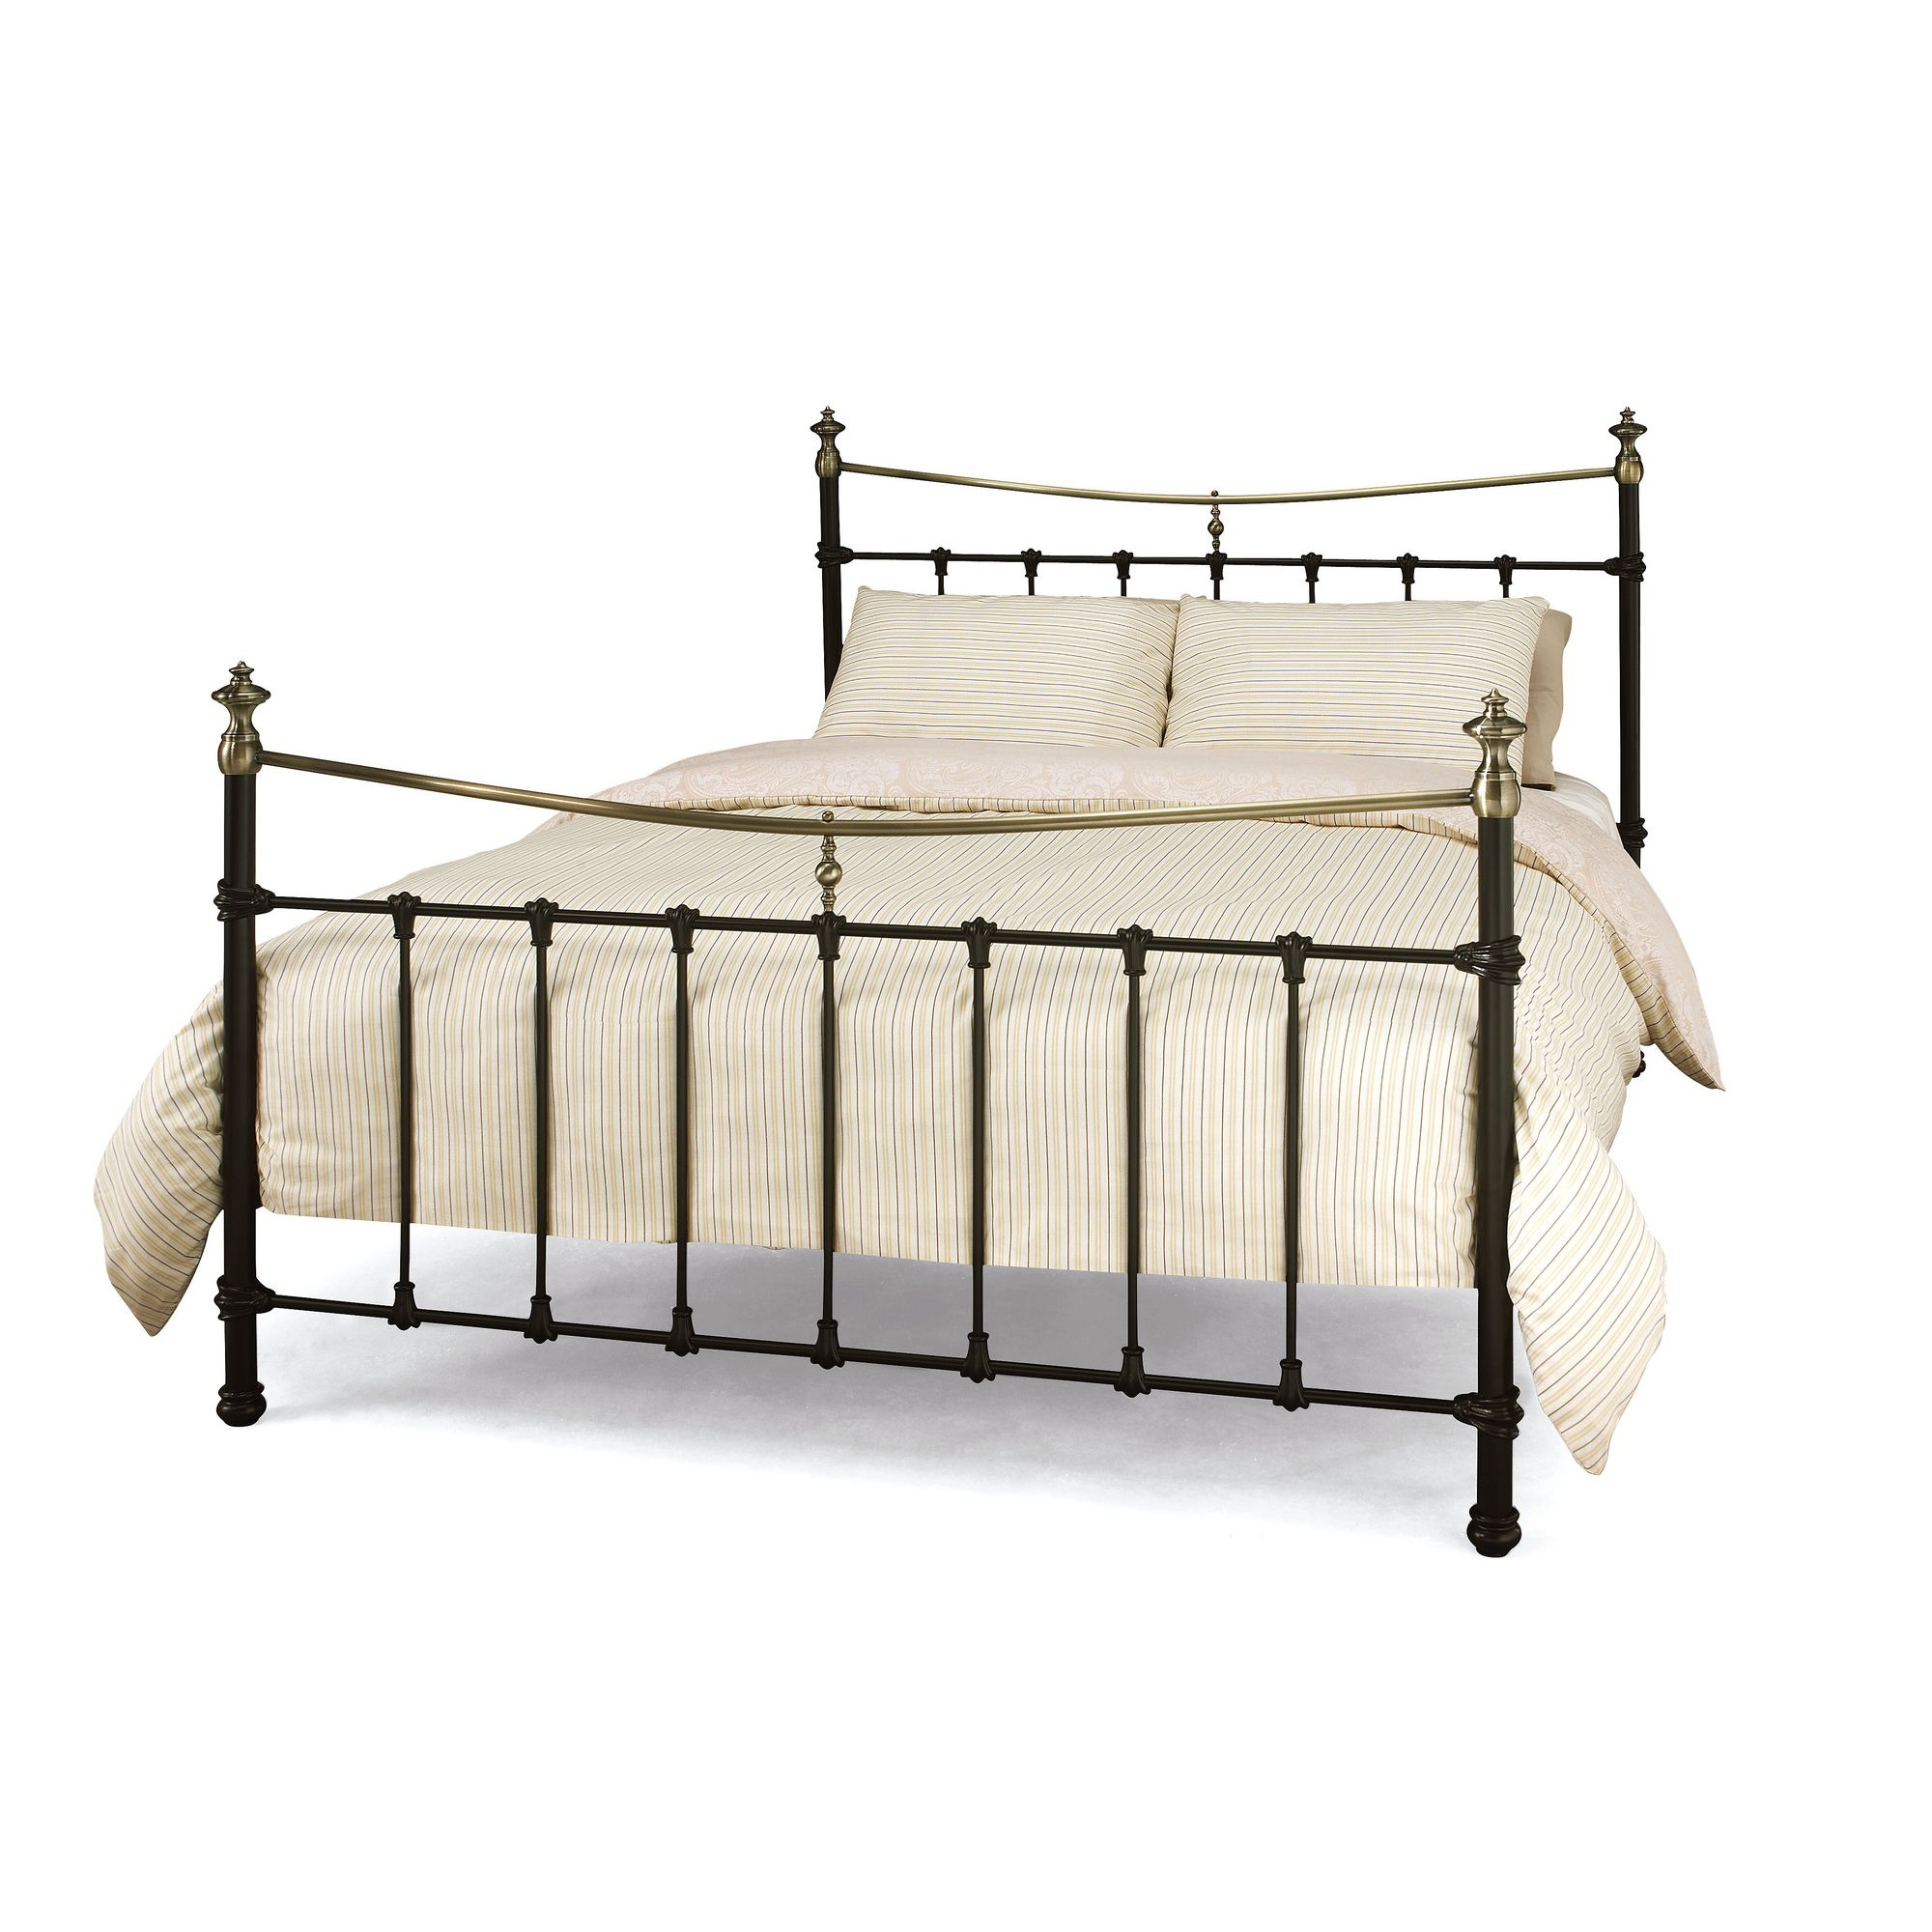 Serene Furnishings Edwardian Bed Frame - King at Tesco Direct